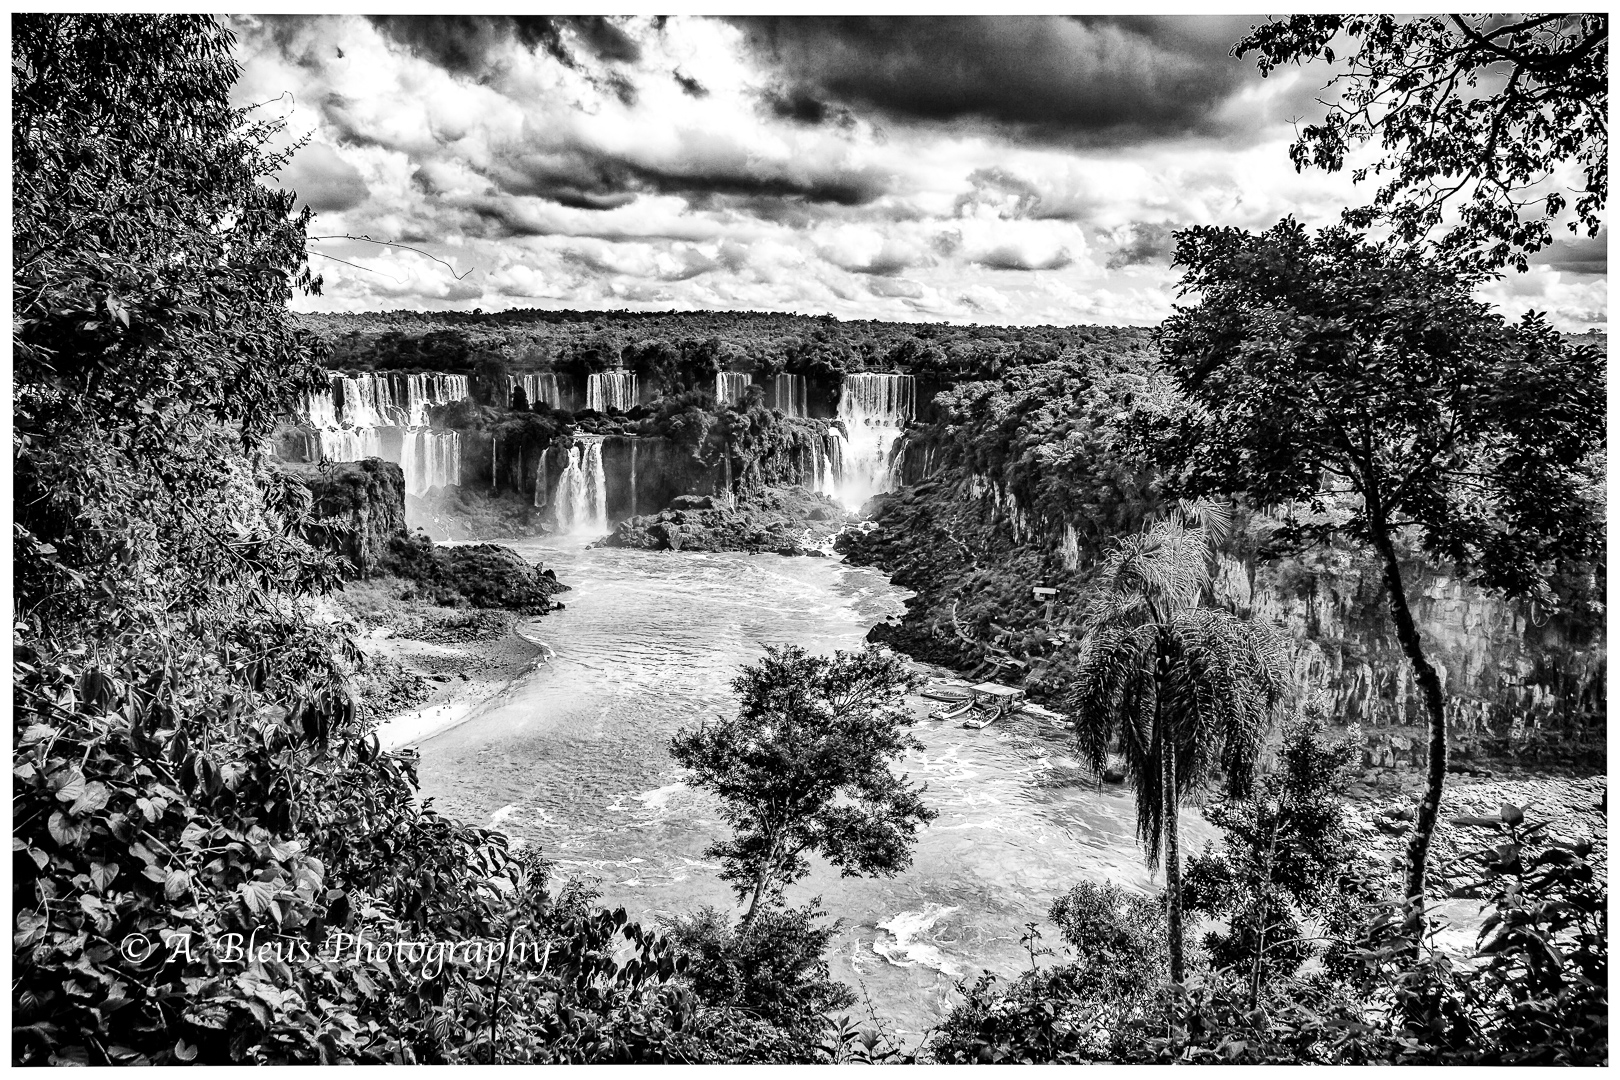 Iguazu Falls, Brazilian side MG_9371-6